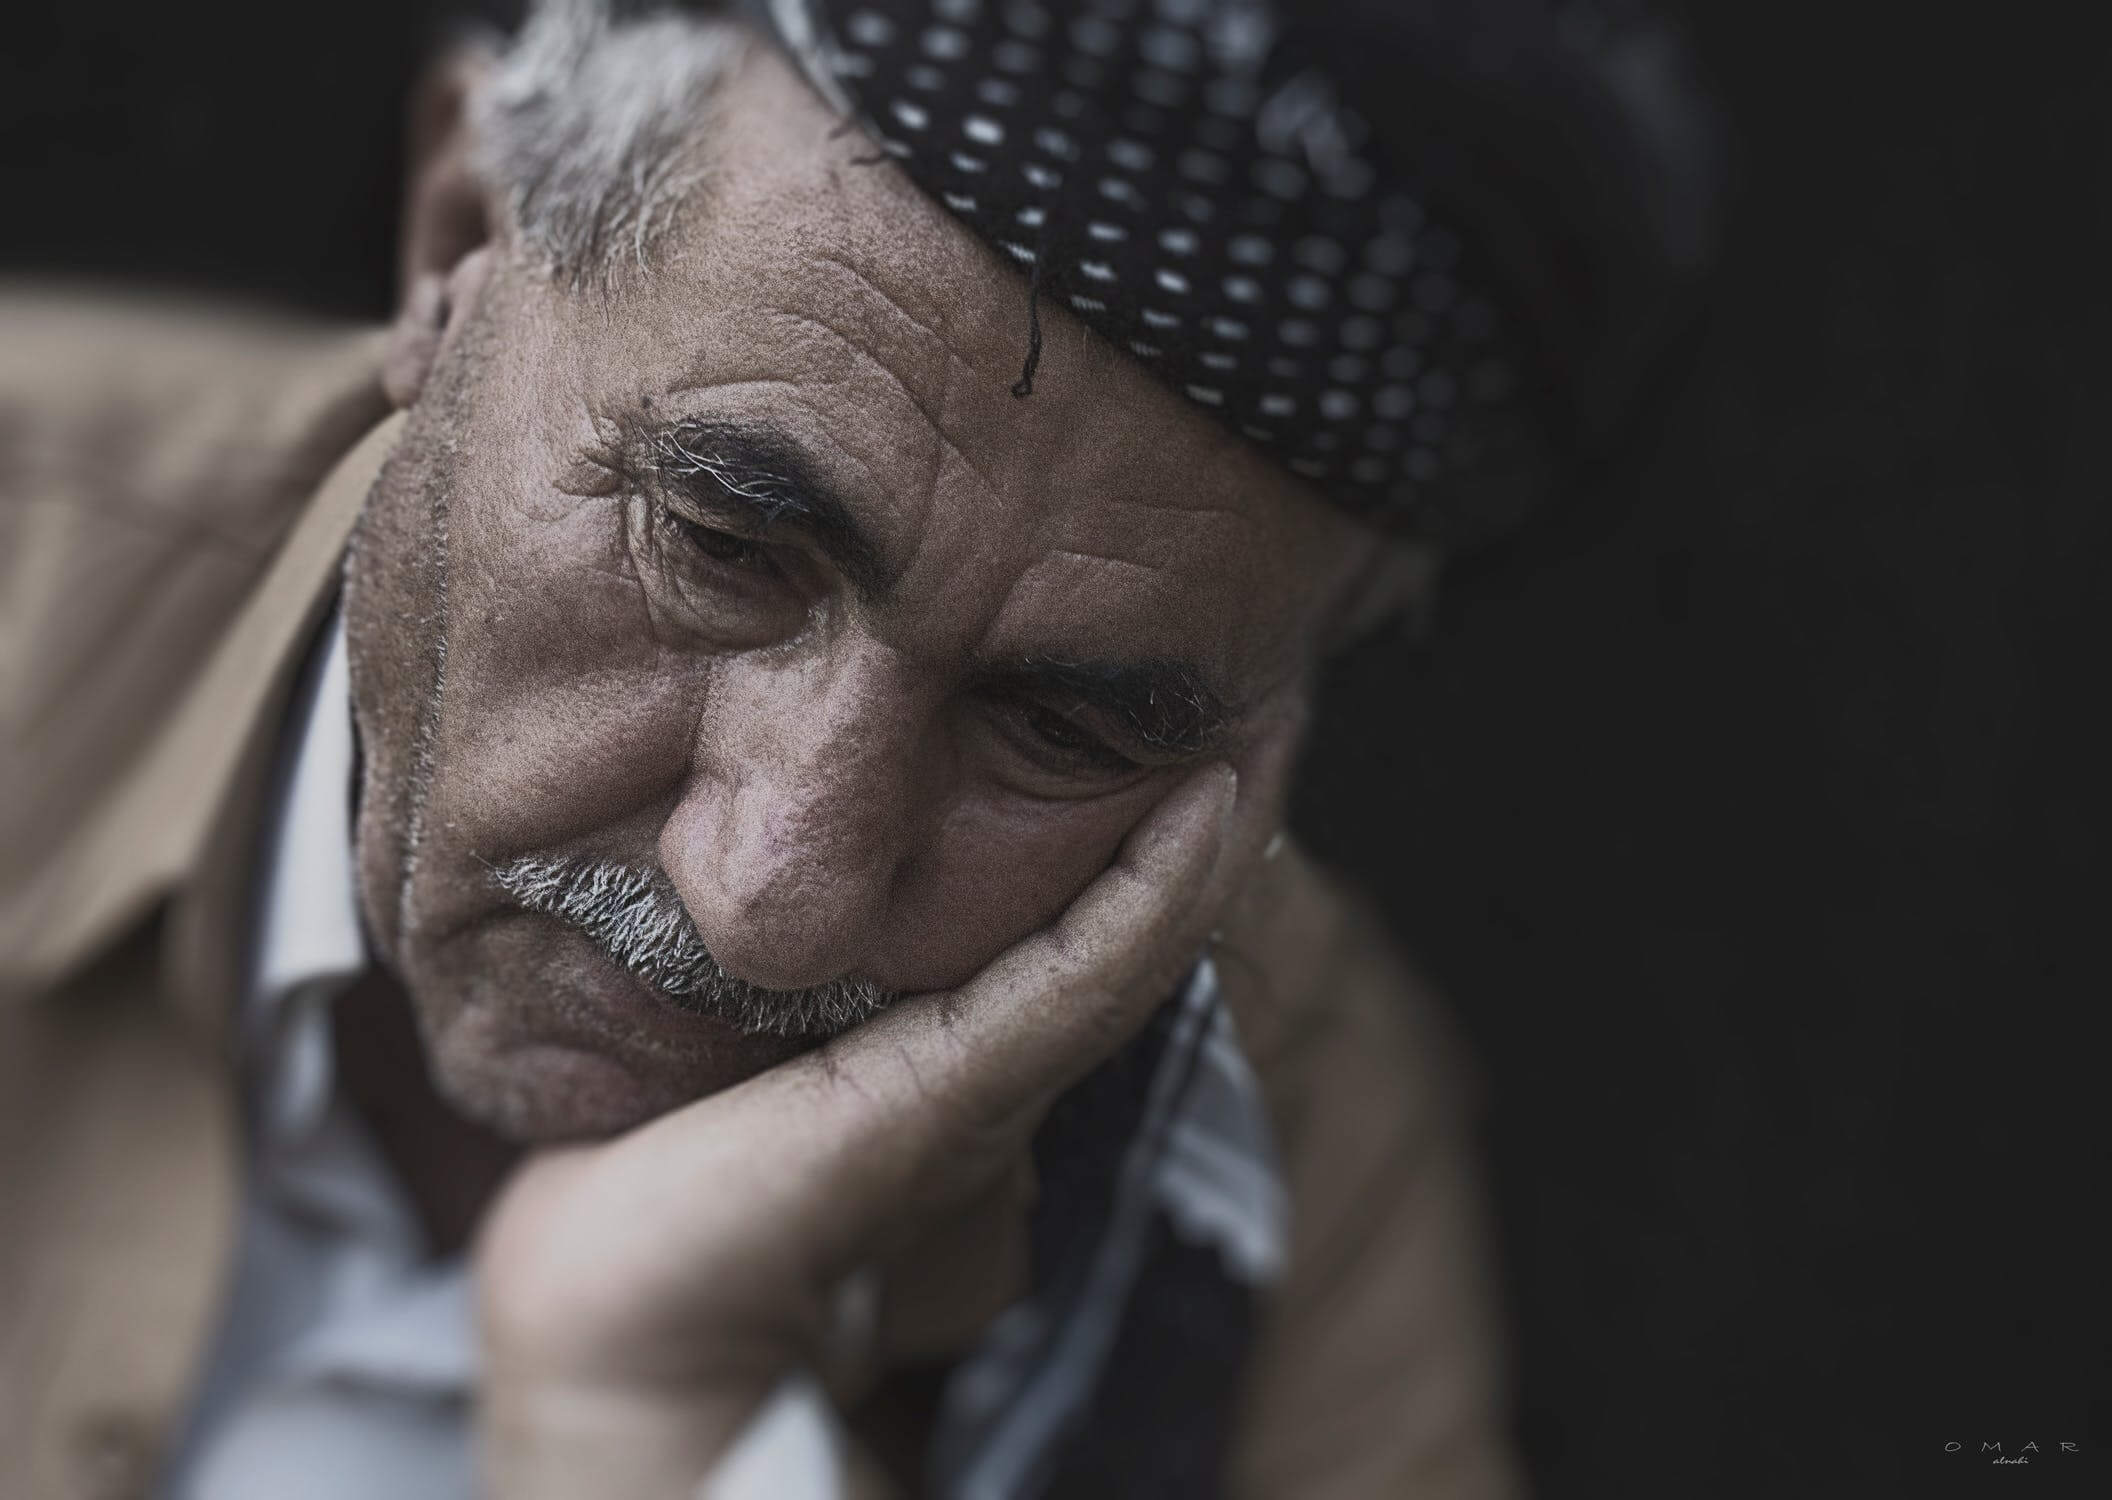 An older man that is sad. He is sad because he has not found the ideal senior living facility yet.